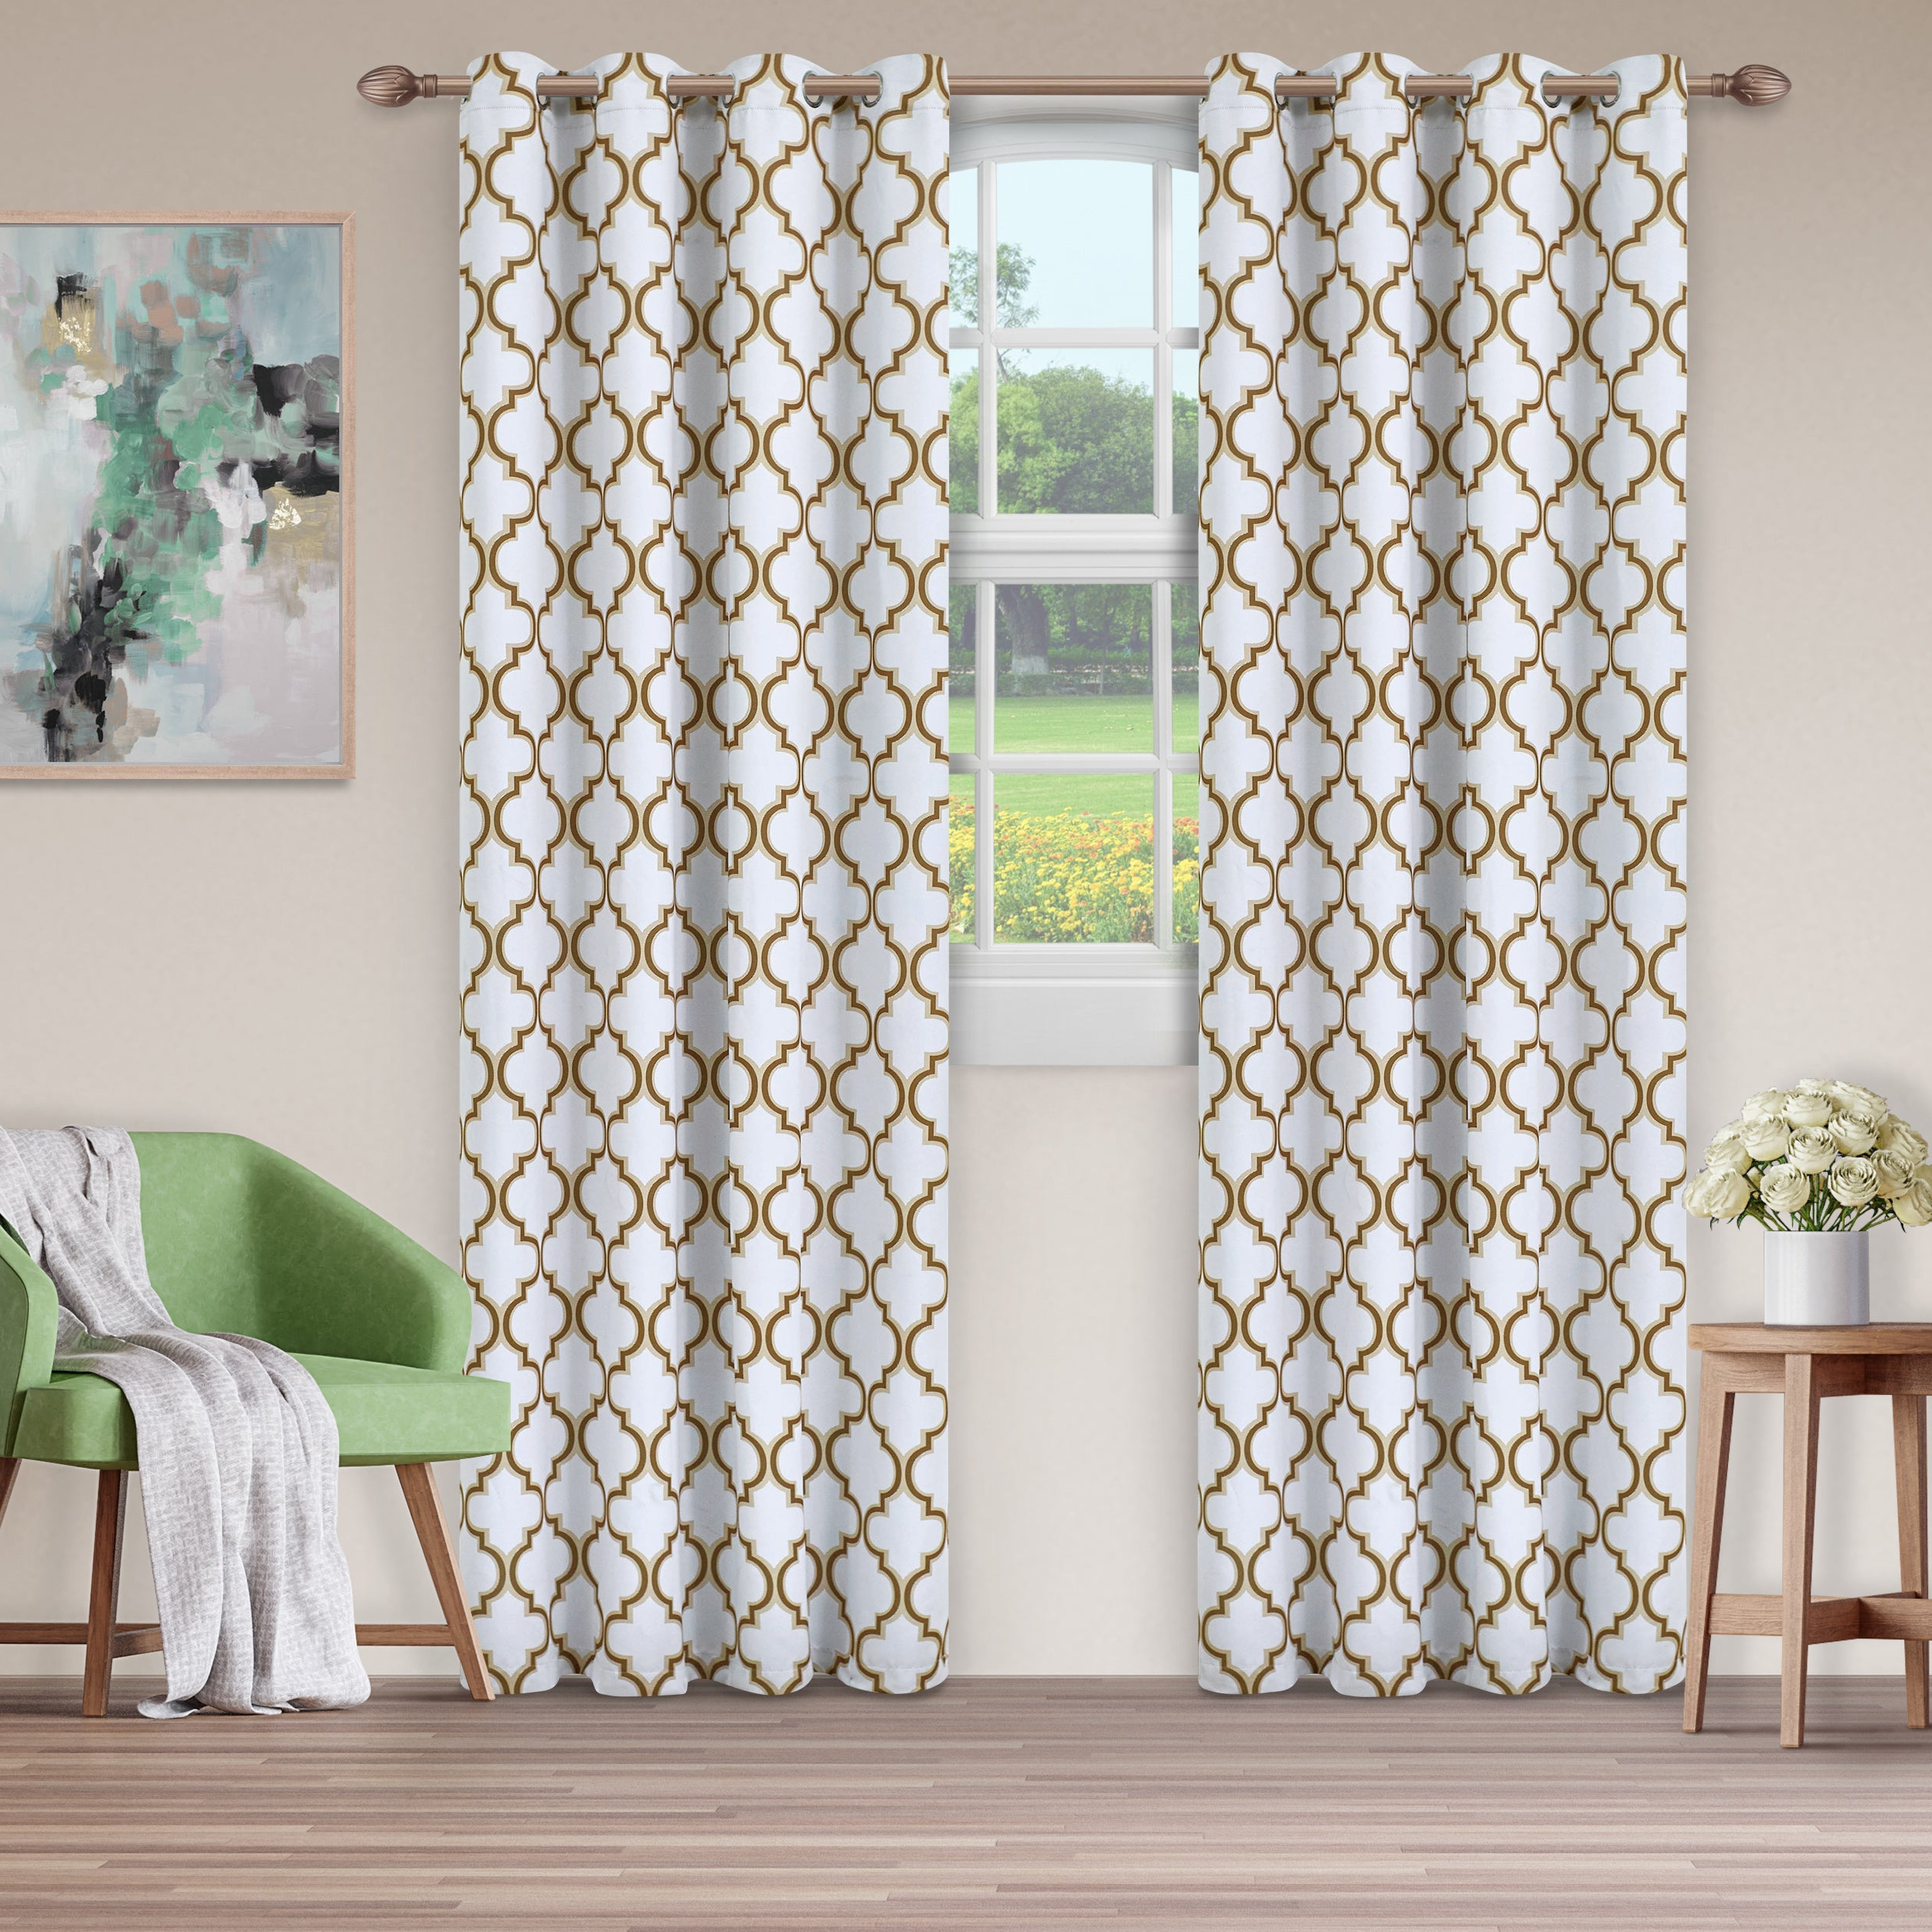 Most Recent Details About Superior Bohemian Trellis Blackout Grommet Curtain Panel With Regard To Superior Solid Insulated Thermal Blackout Grommet Curtain Panel Pairs (View 7 of 20)